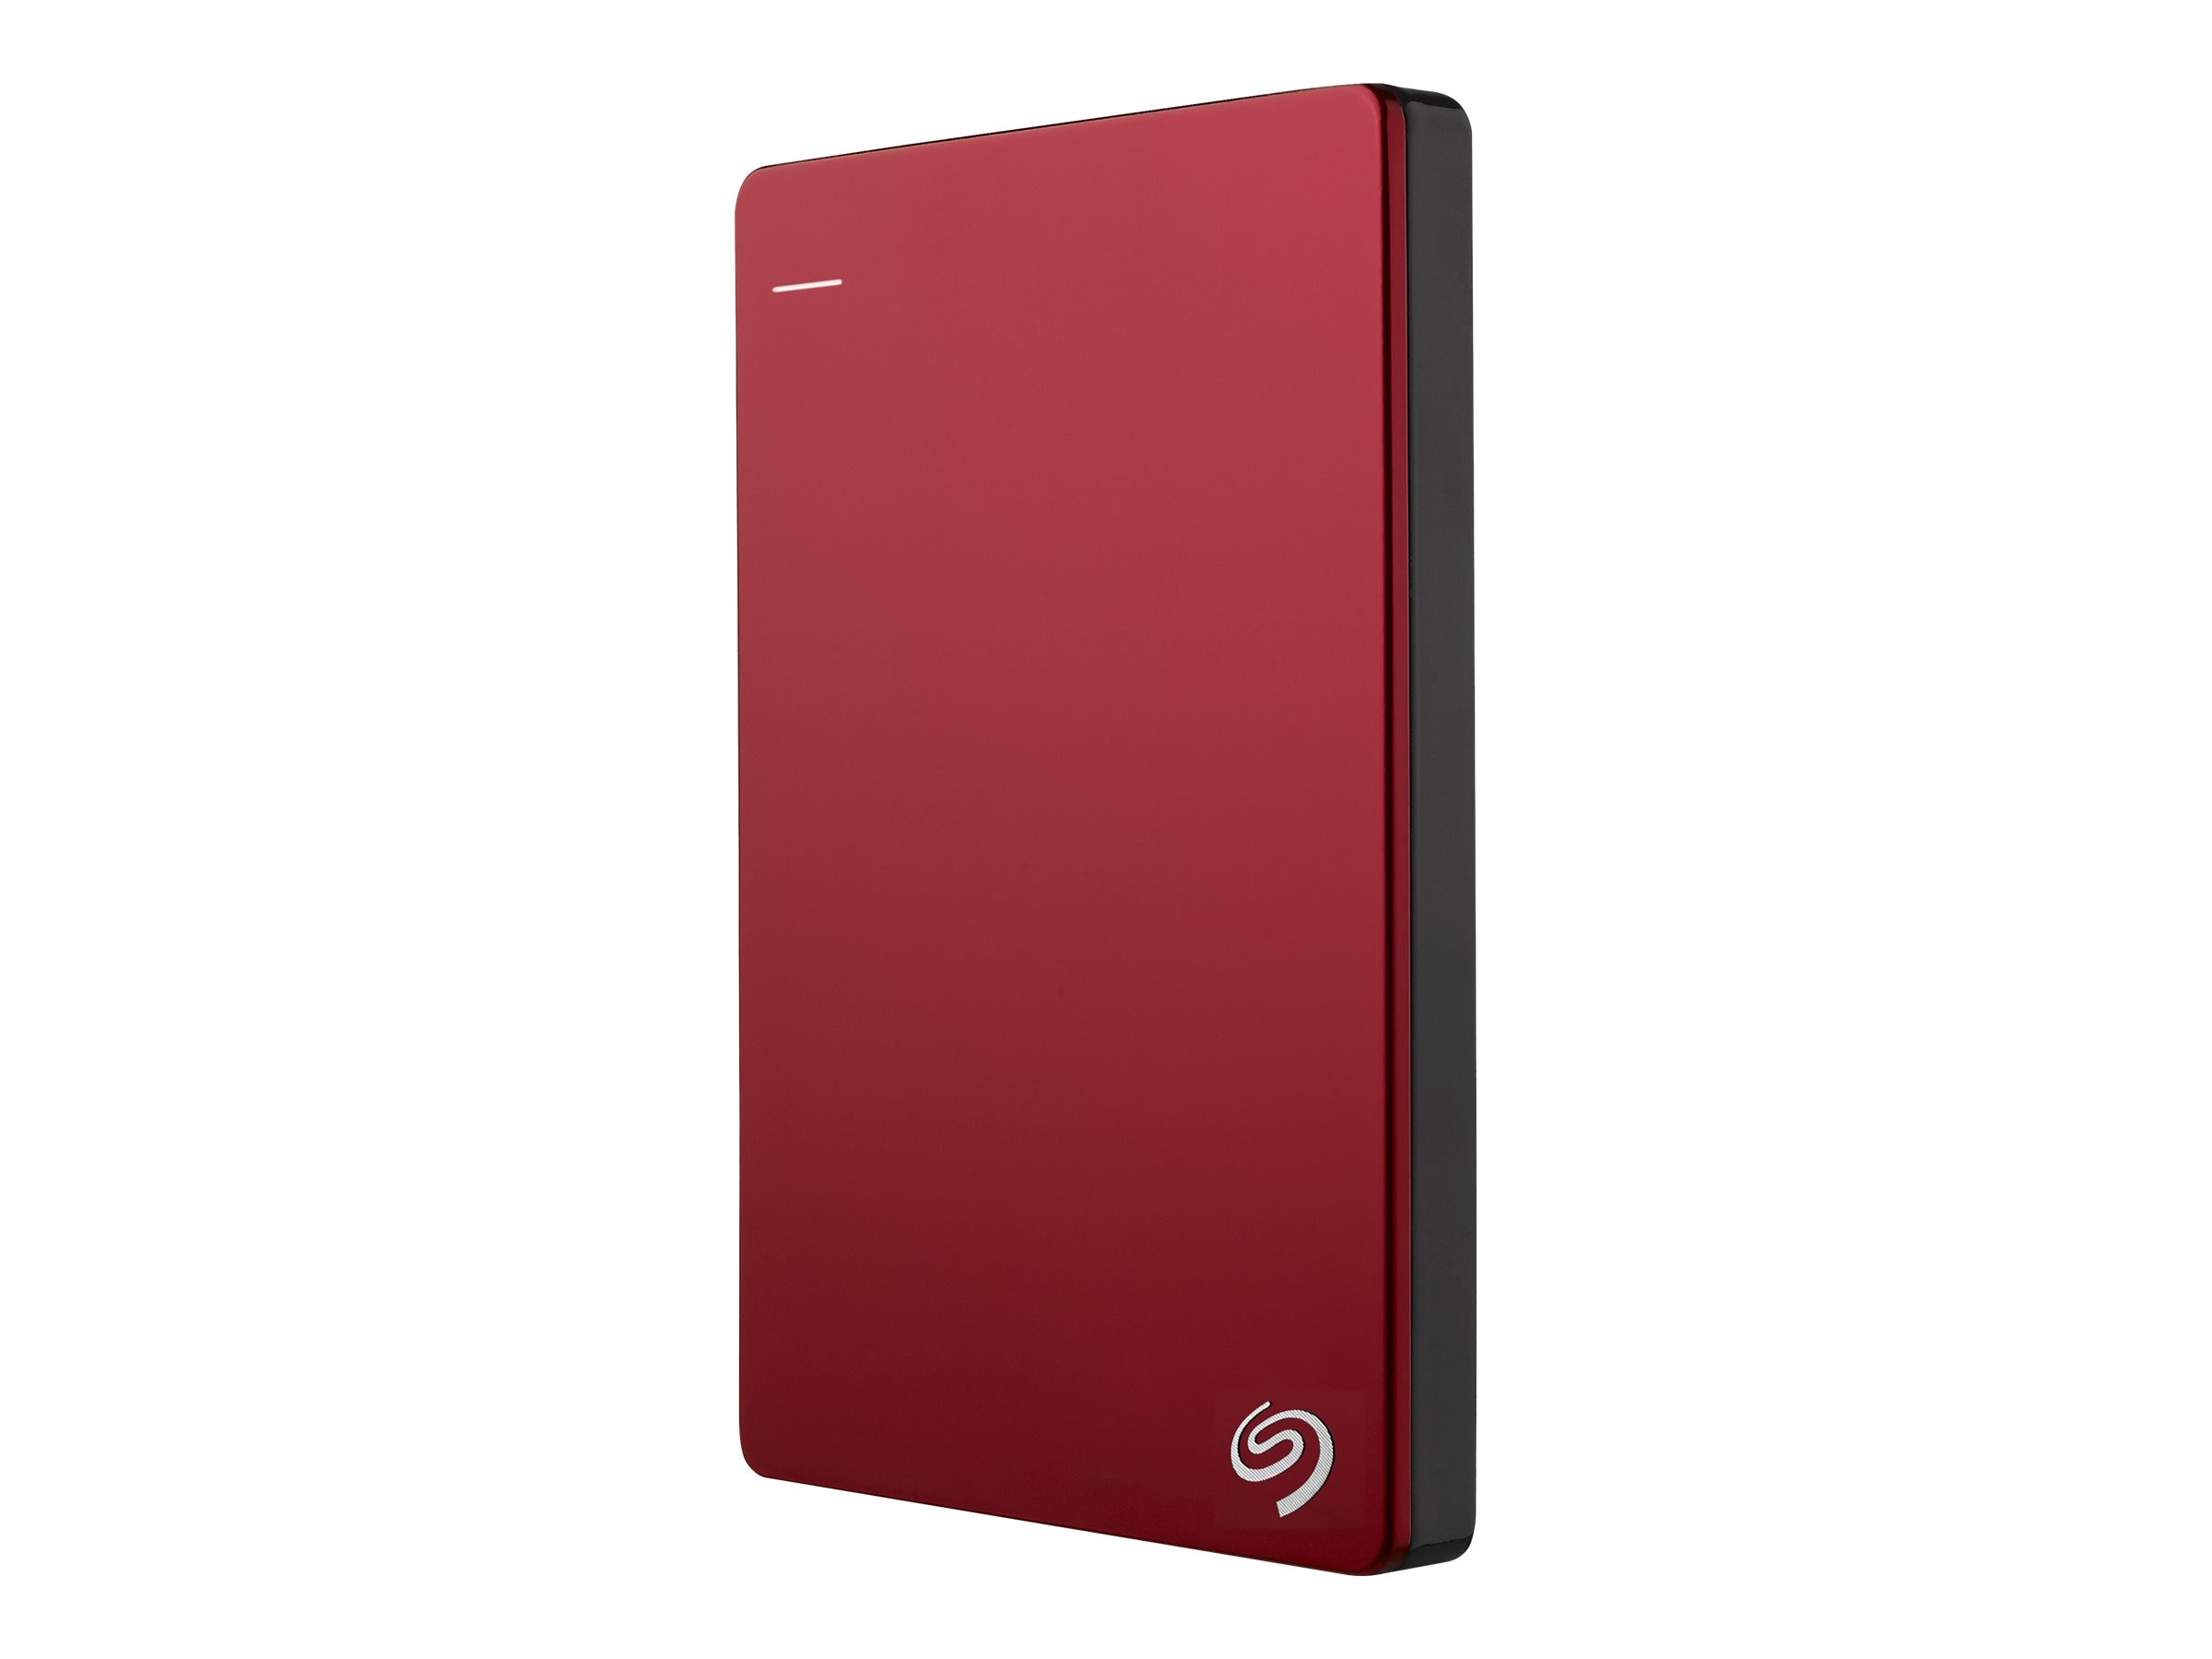 Seagate 1TB Backup Plus USB 3.0 Slim Portable Hard Drive - Red